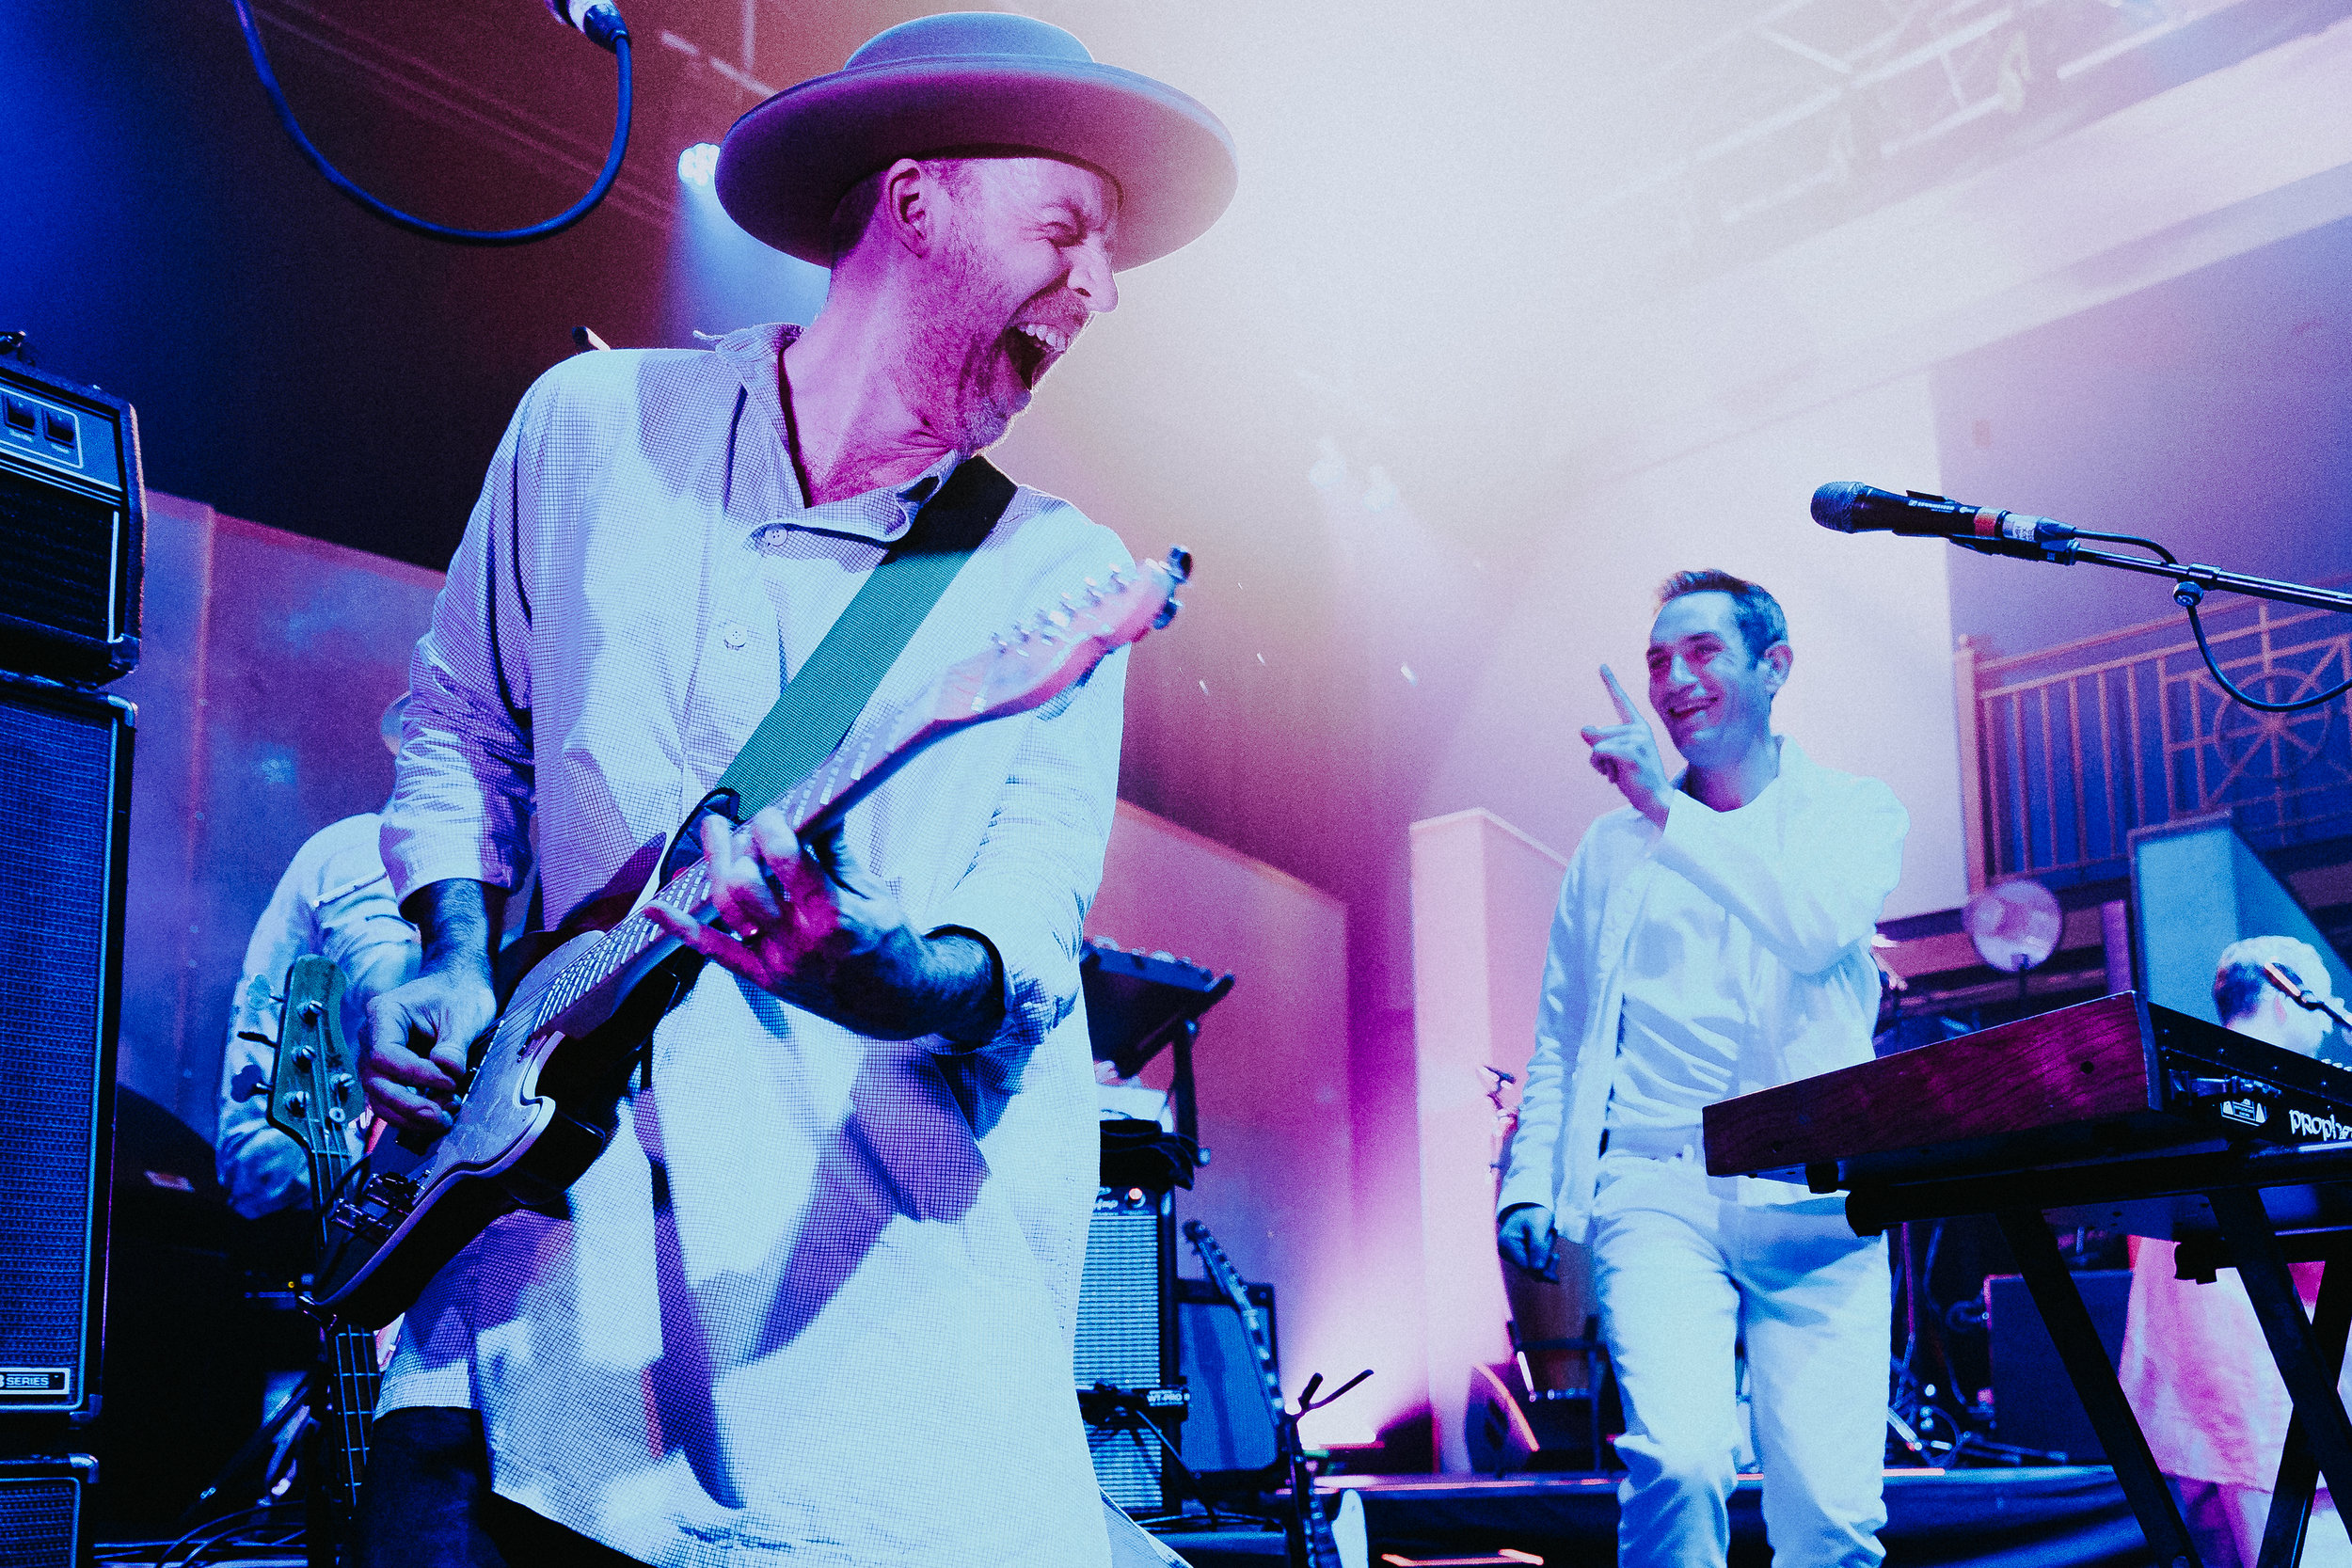 Al Doyle and Owen Clarke of Hot Chip at 9:30 Club (Photo by Mauricio Castro)